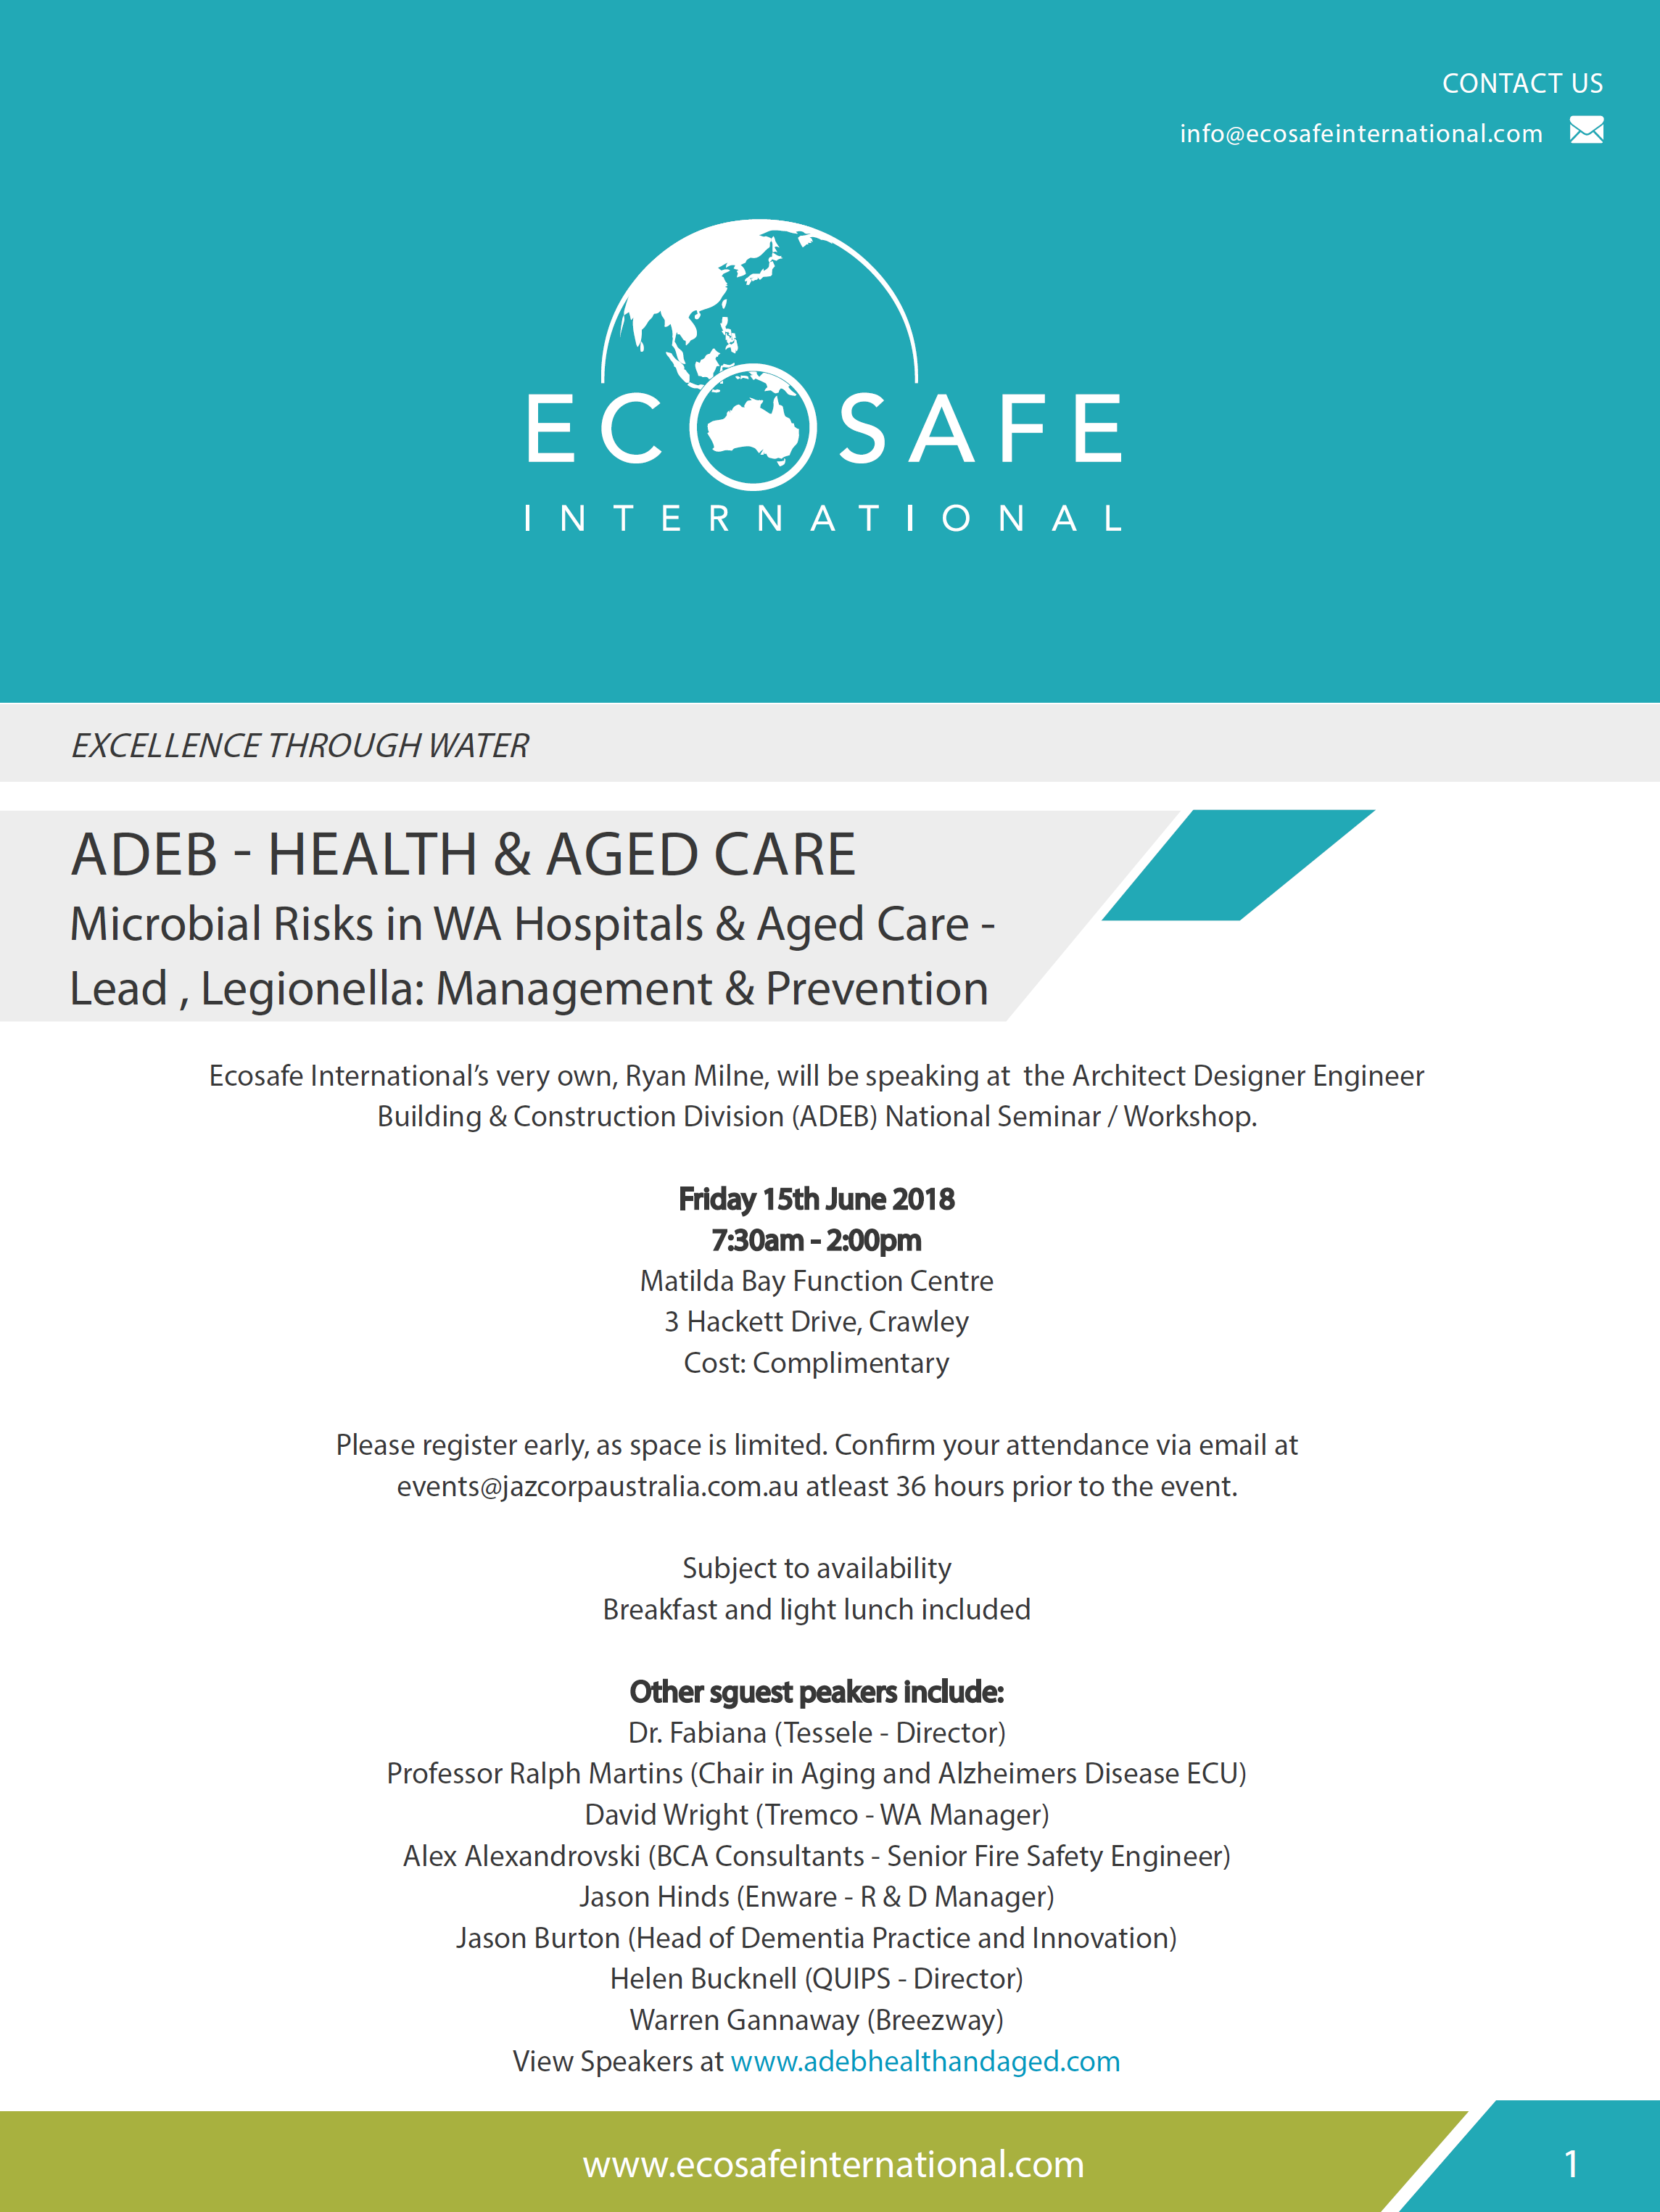 ADEB Health & Aged Care - Microbial Risks, Lead & Legionella